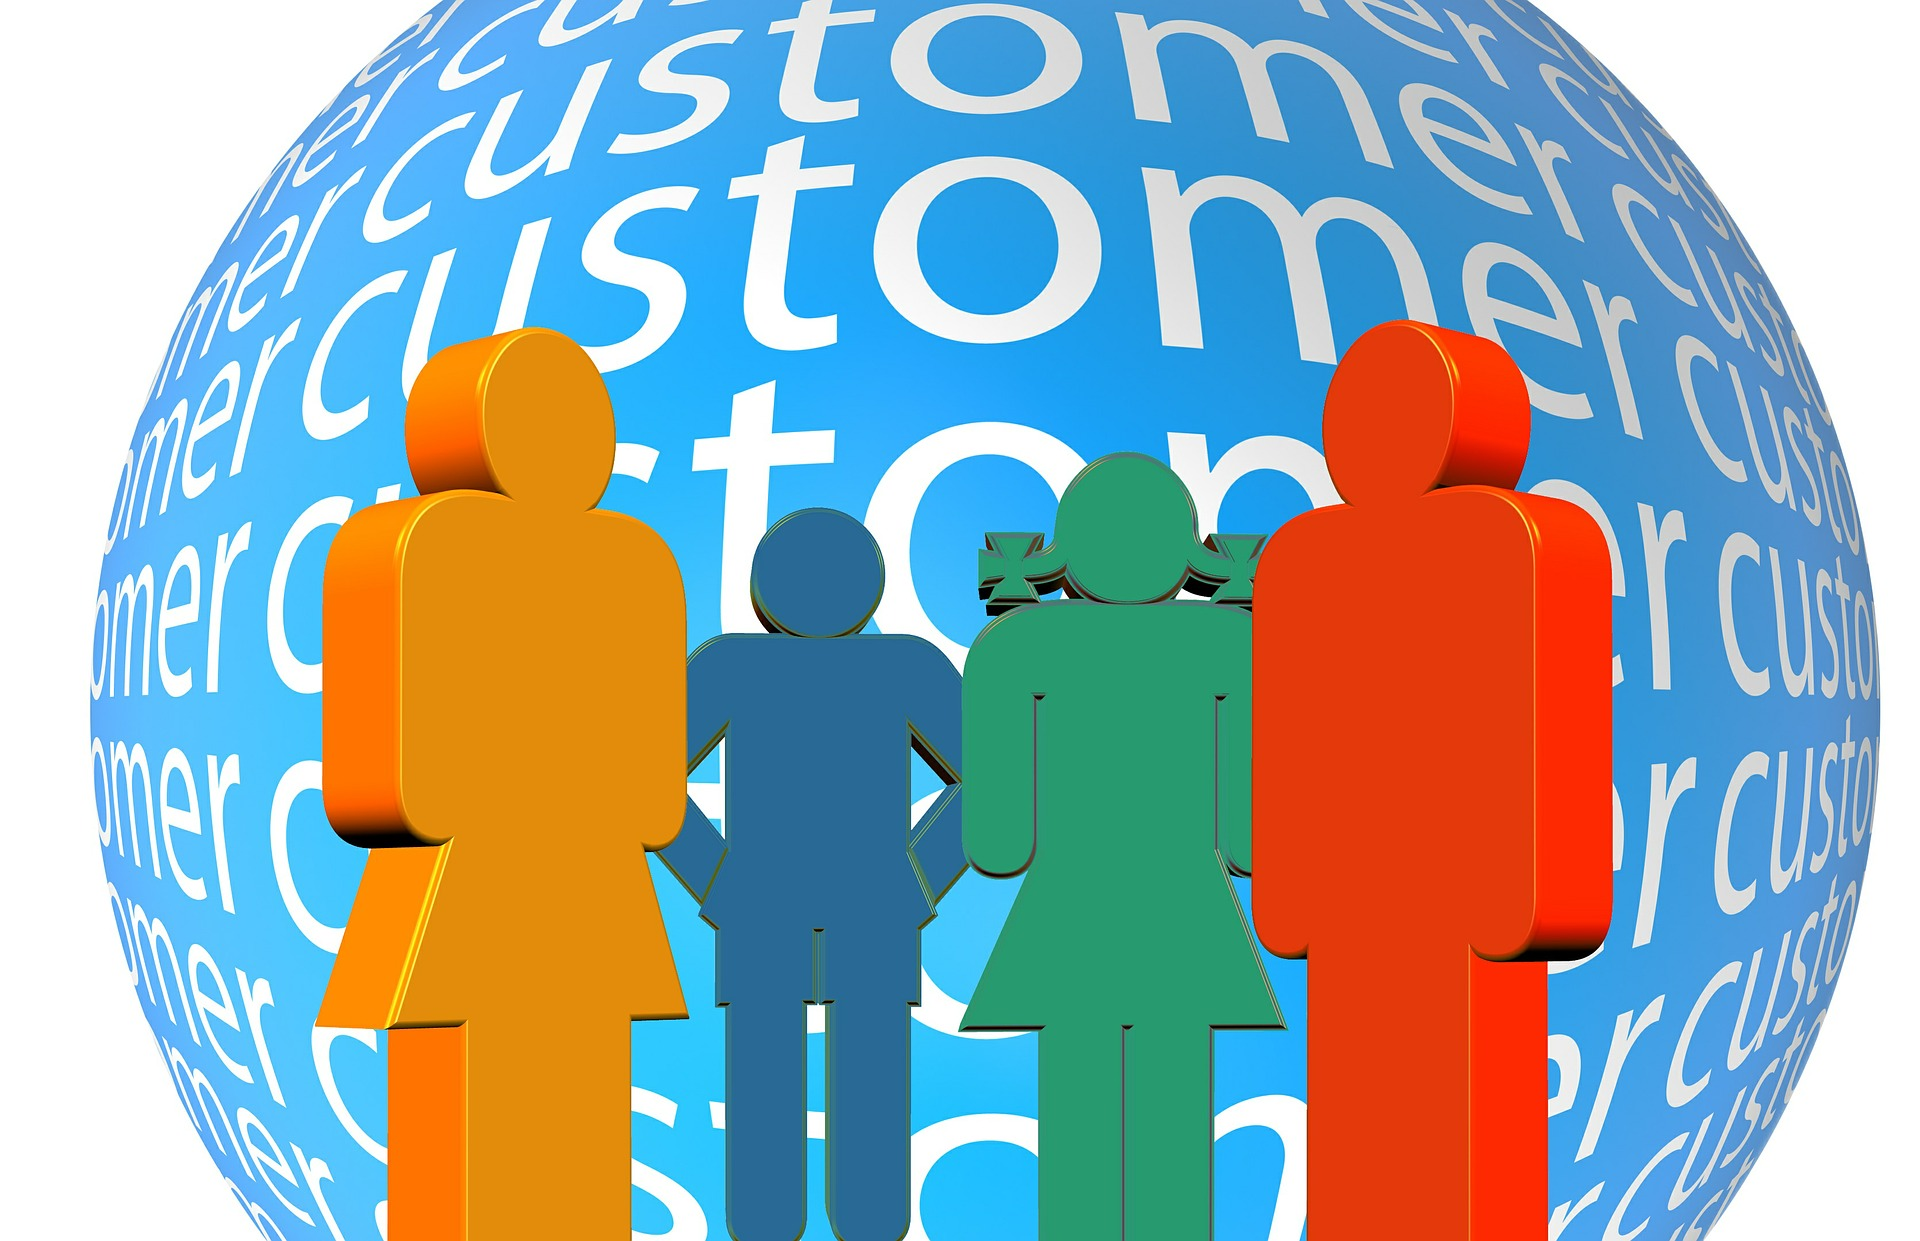 CRM is about putting the customer first.